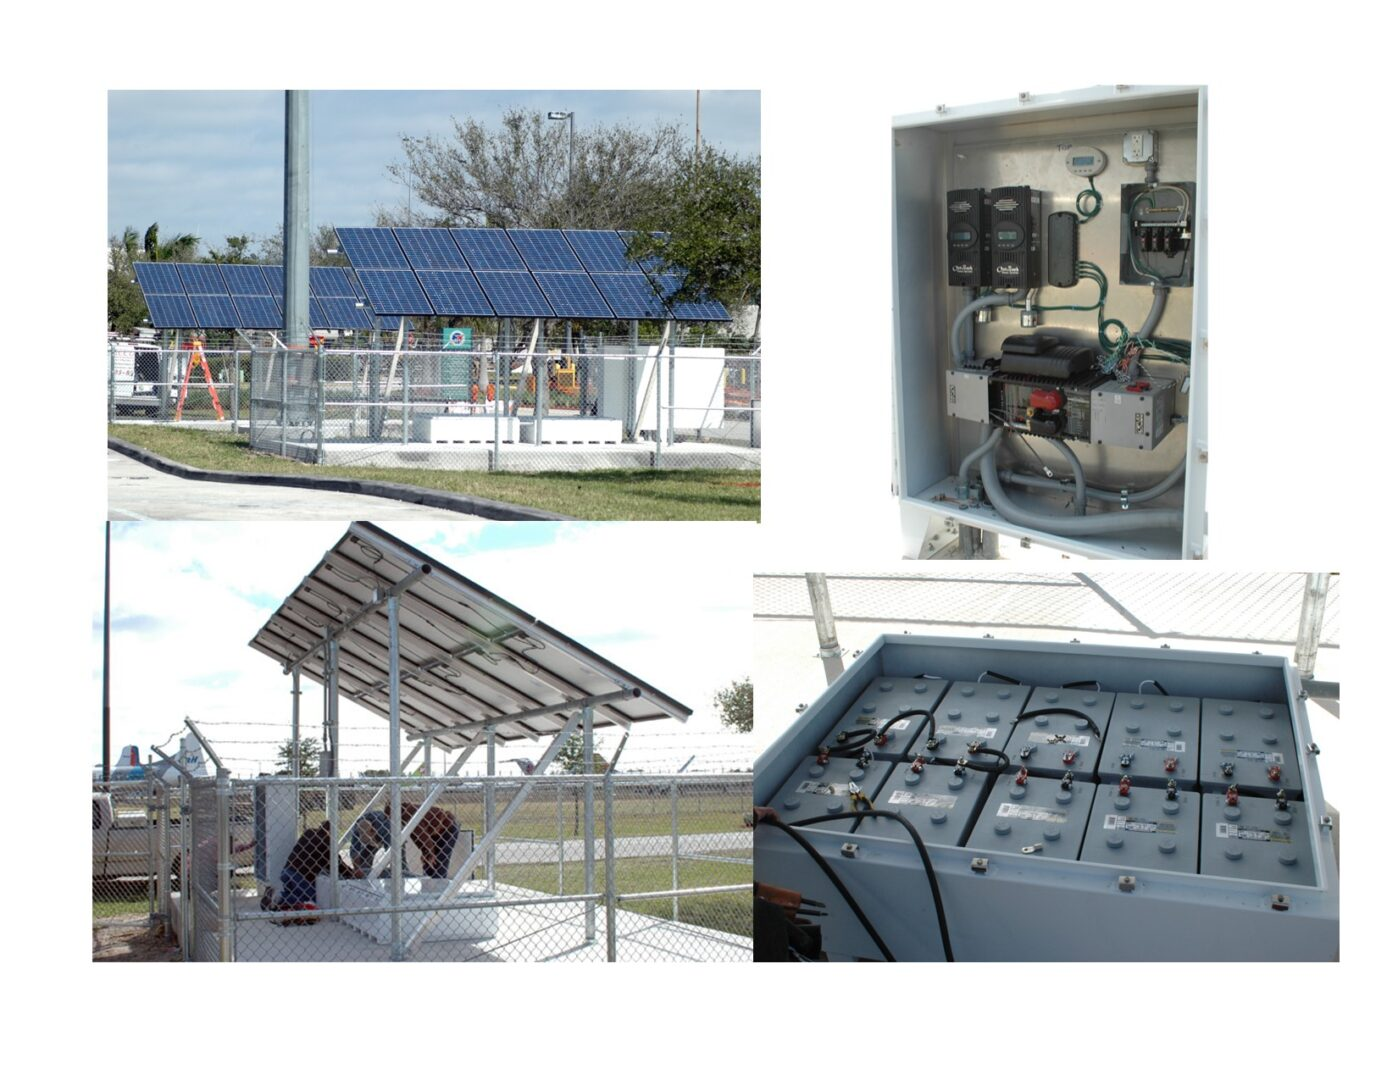 Opa Locka Airport - 4.8kW 'Off-Grid', Solar Powered CCTV Security System with 54kWh of Battery back-up (One of Five Systems)